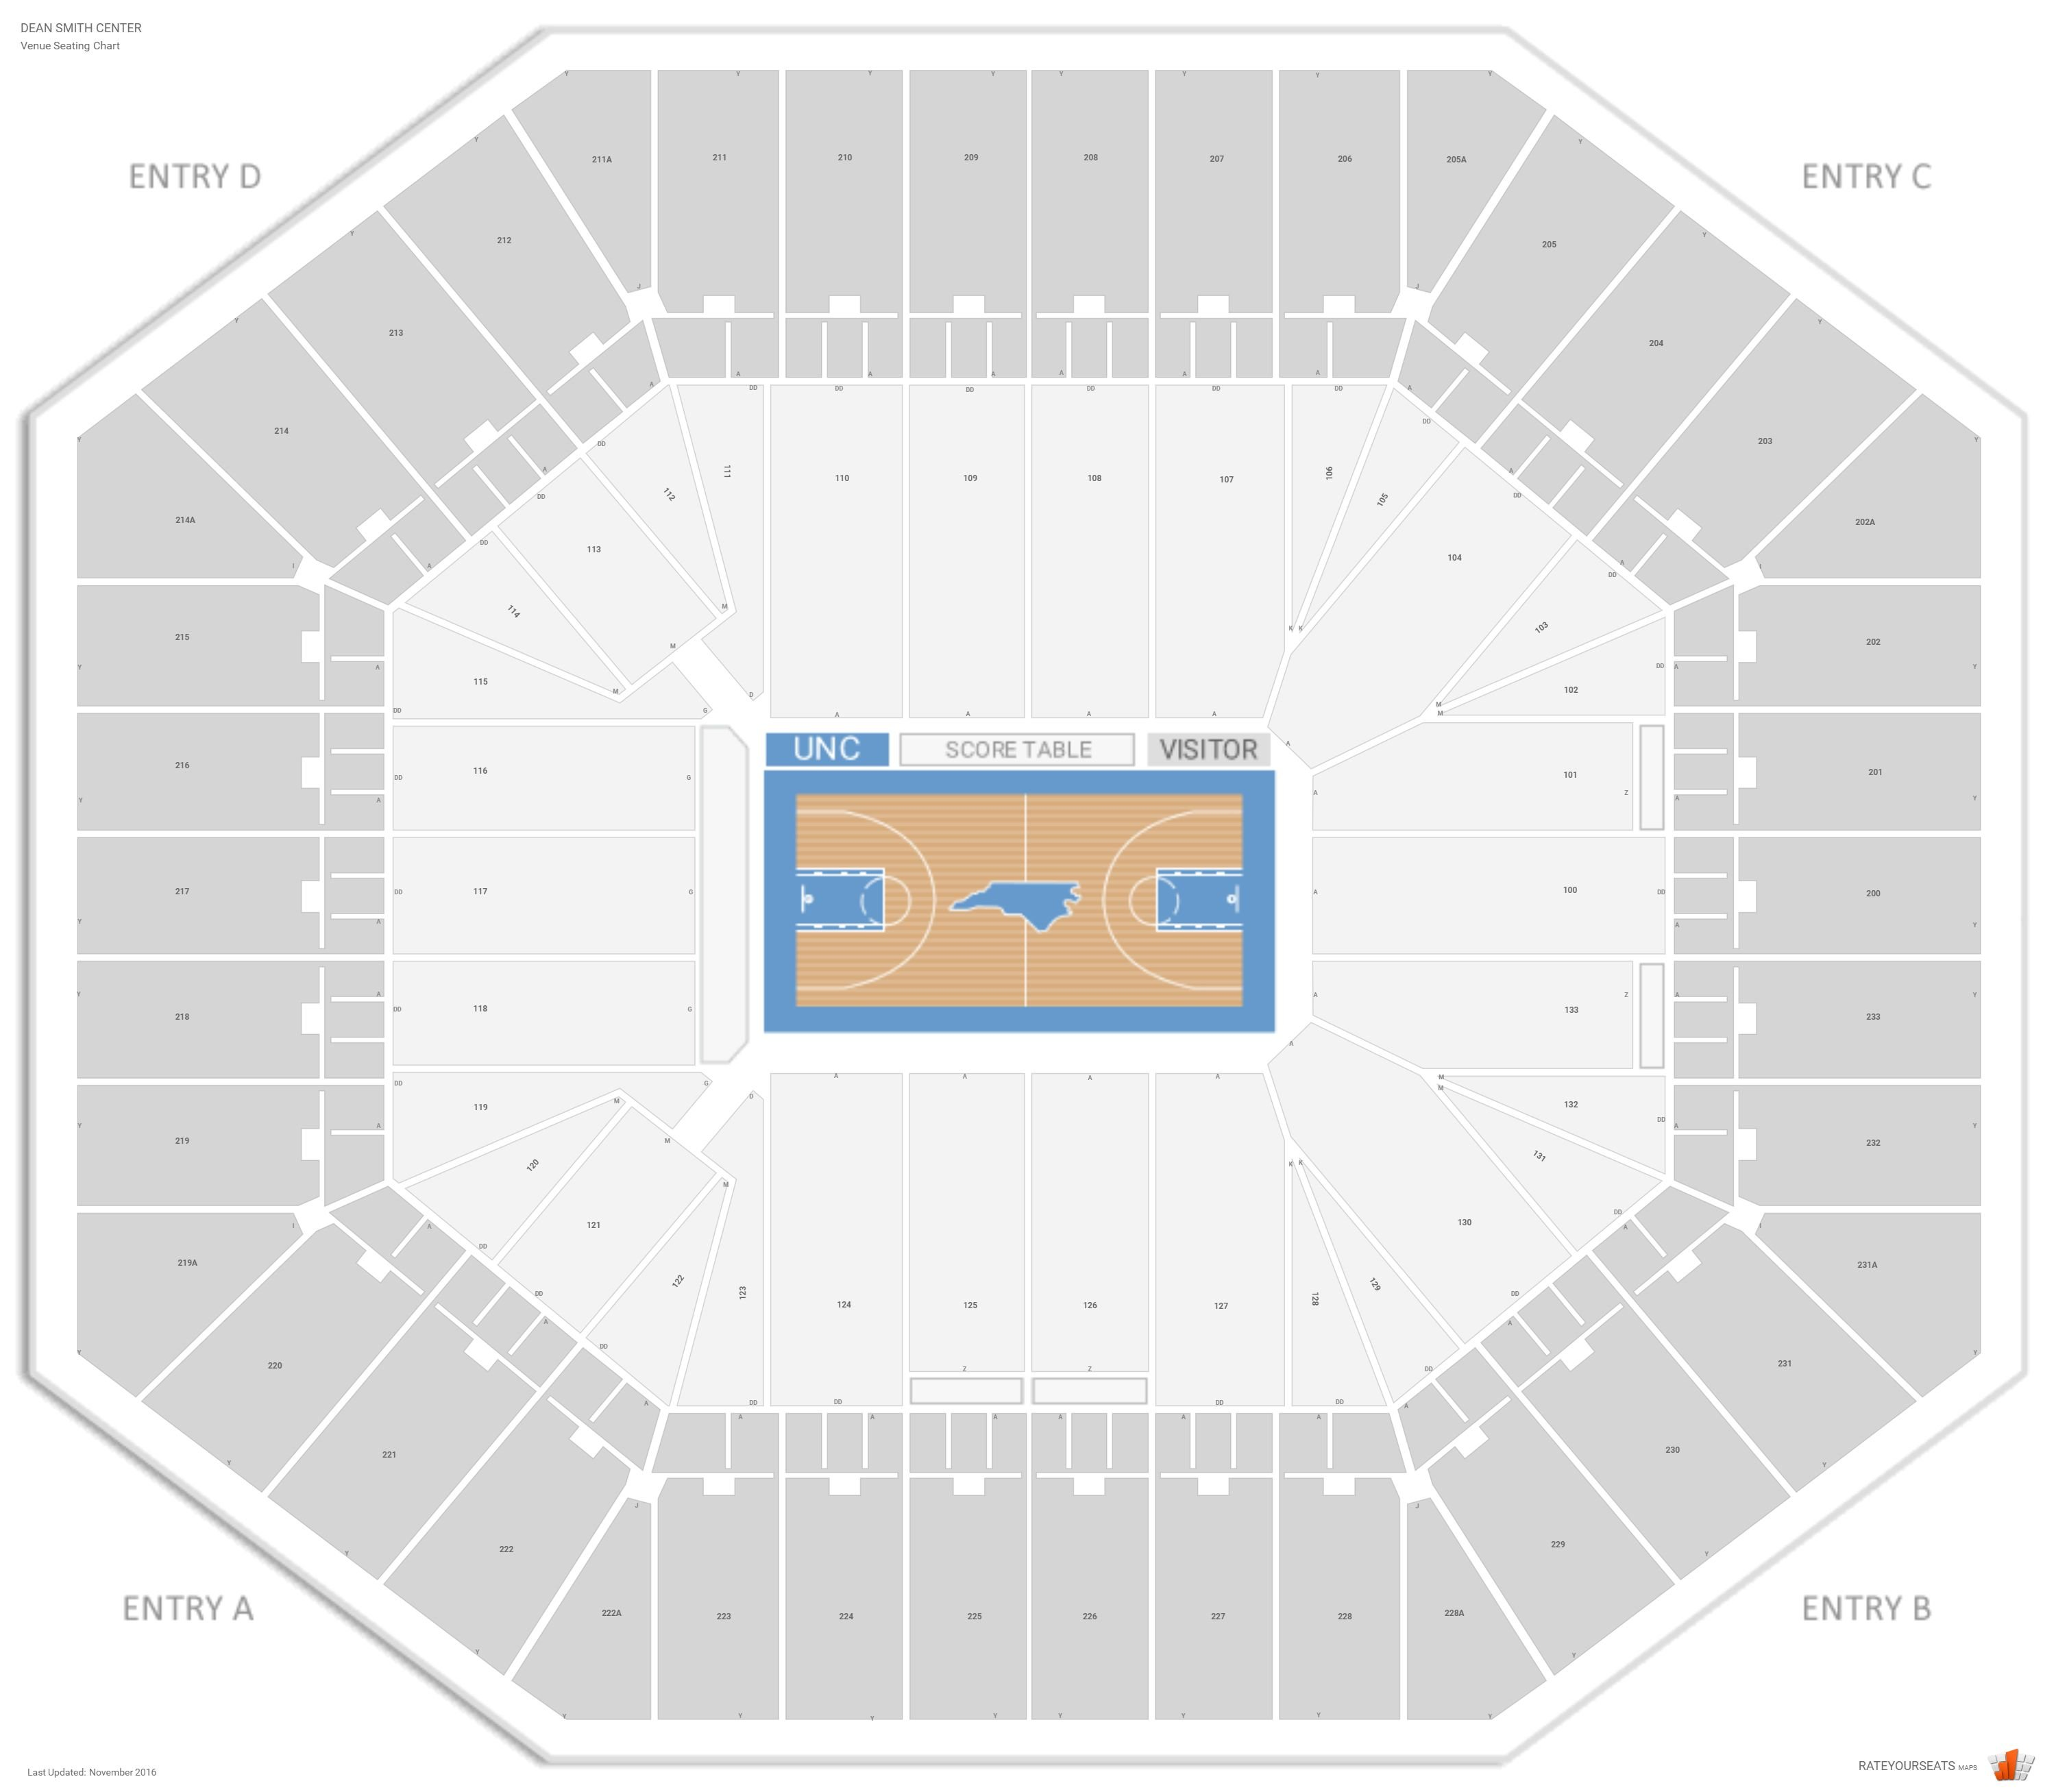 Dean Smith Center Seating Chart With Row Numbers